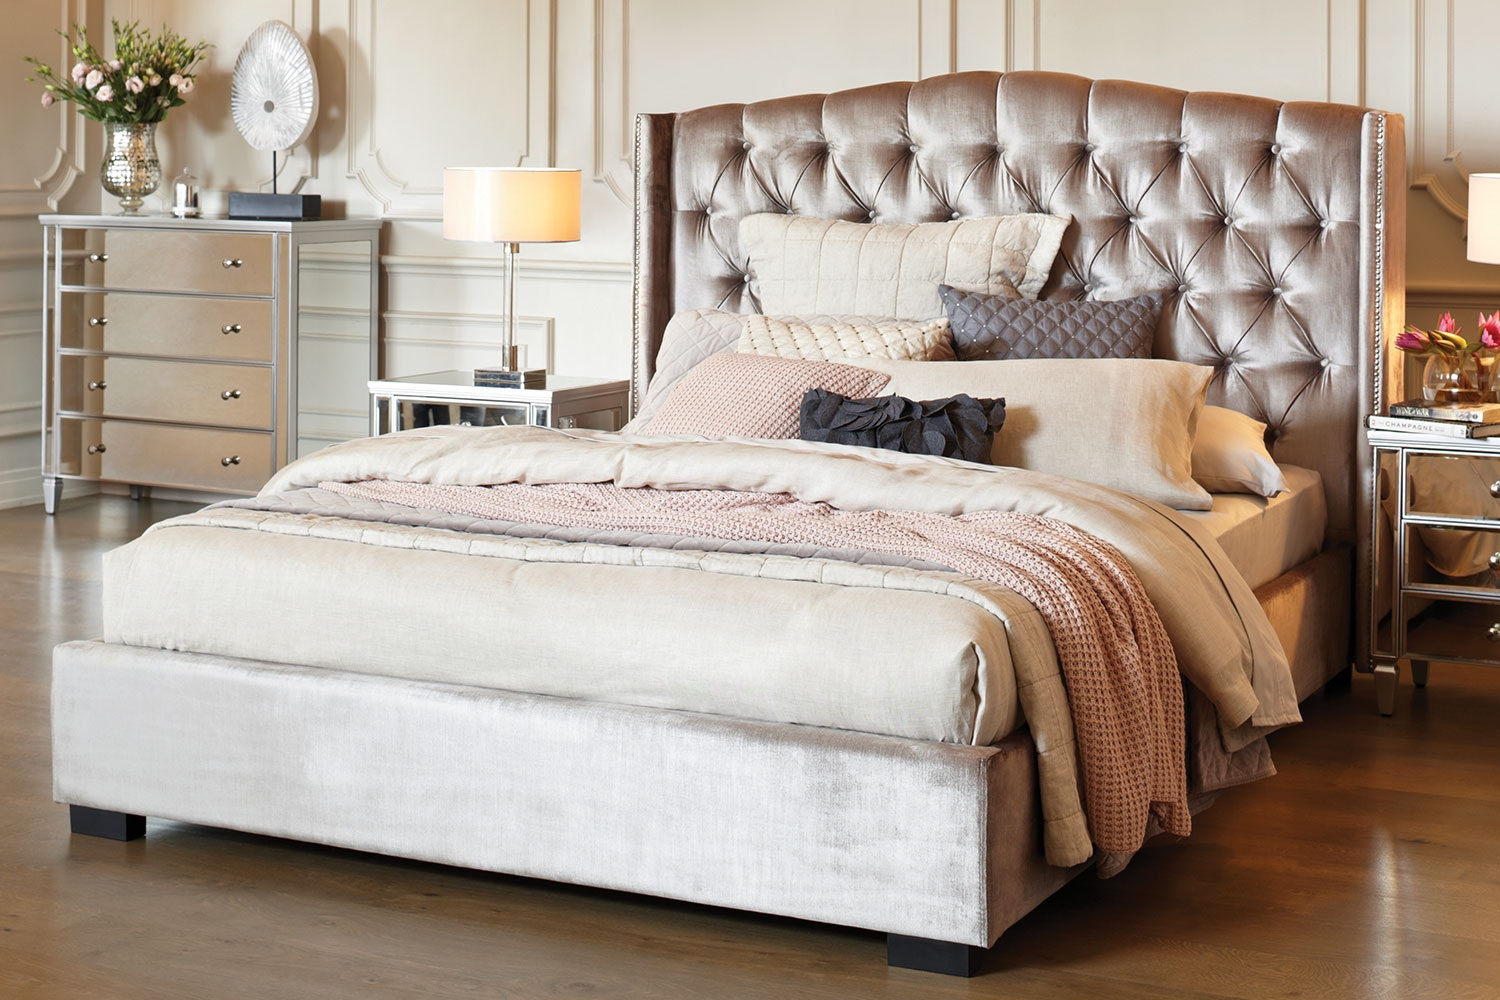 L'Amour King Bed Frame by Stoke Furniture